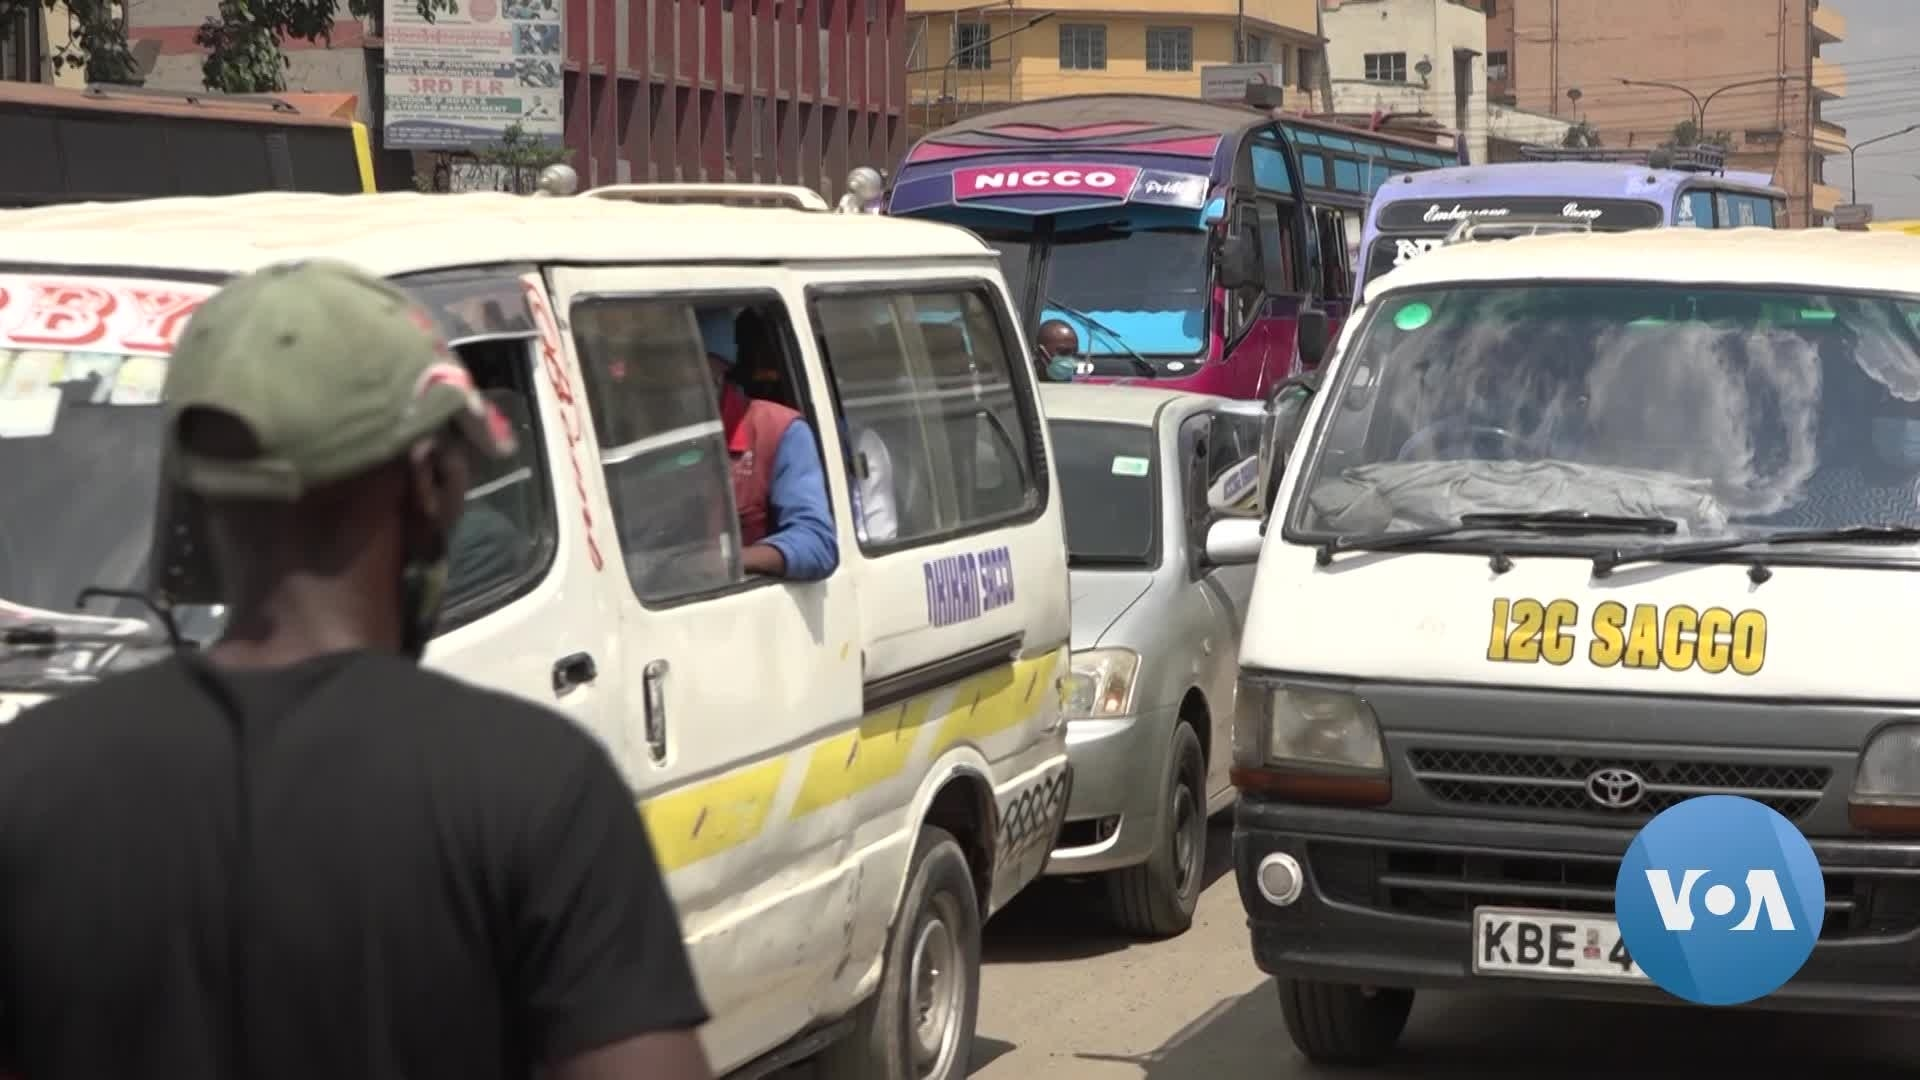 Nairobi's Iconic Minibuses Launch Contact Tracing for COVID-19 | Voice of America